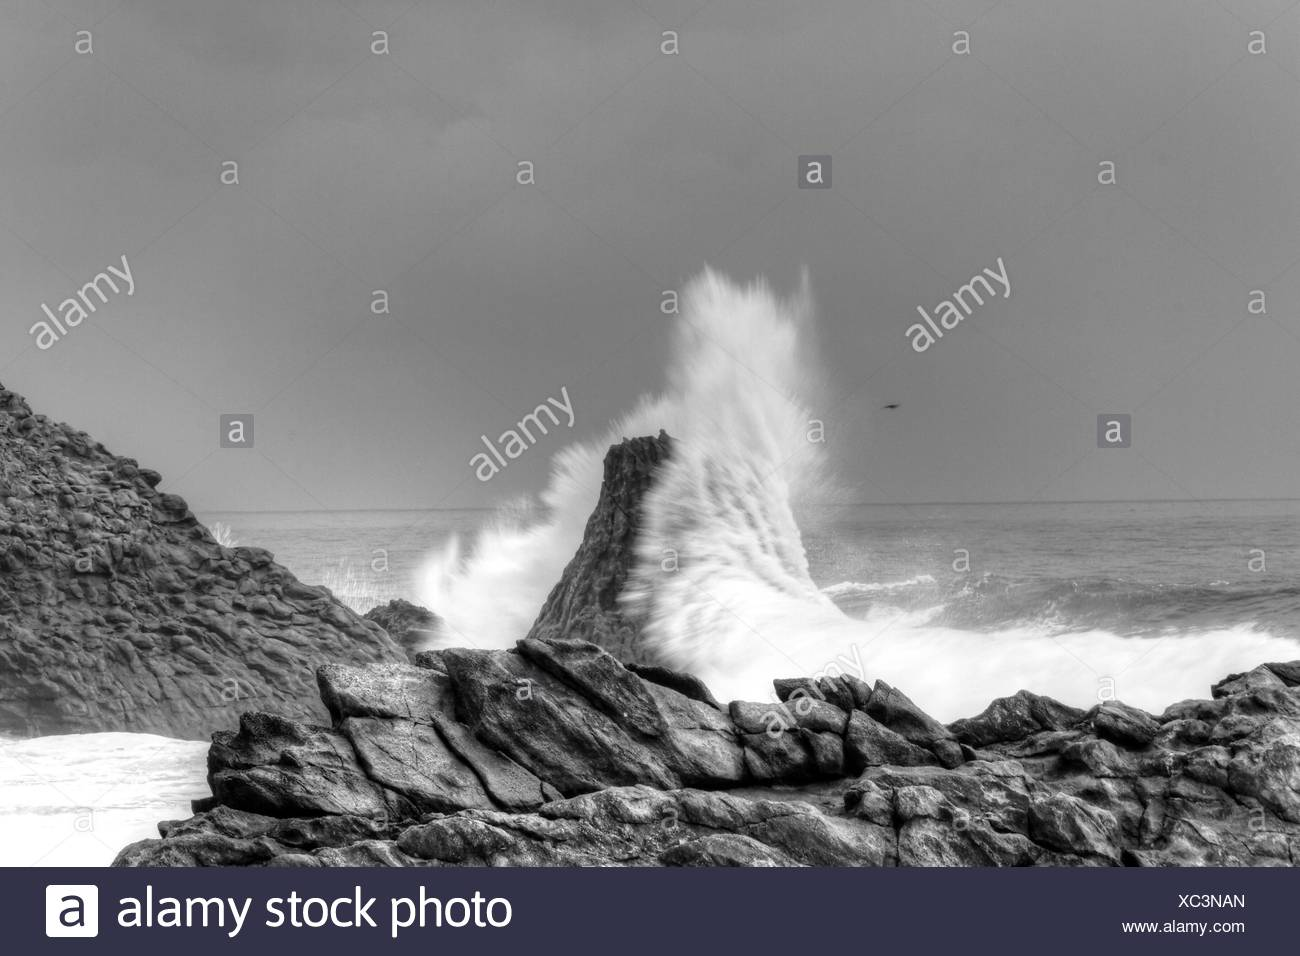 Waves Breaking On Rocks At Overcast Day - Stock Image